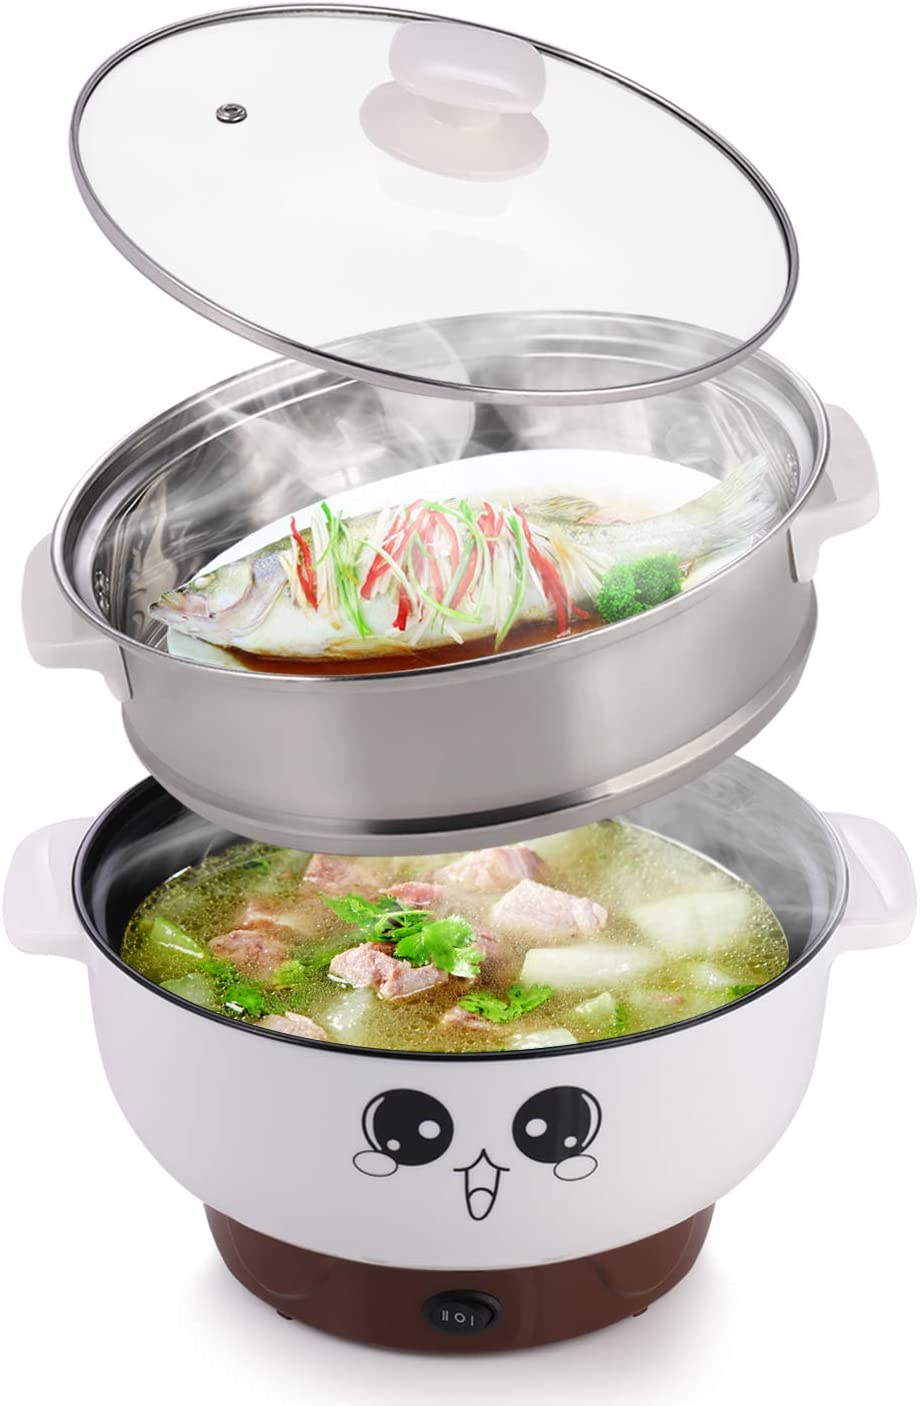 MINGPINHUIUS 4-in-1 Multifunction Electric Cooker Skillet Wok Electric Hot Pot For Cook Rice Fried Noodles Stew Soup Steamed Fish Boiled Egg Small Non-stick with Lid (2.3L, with Steamer)